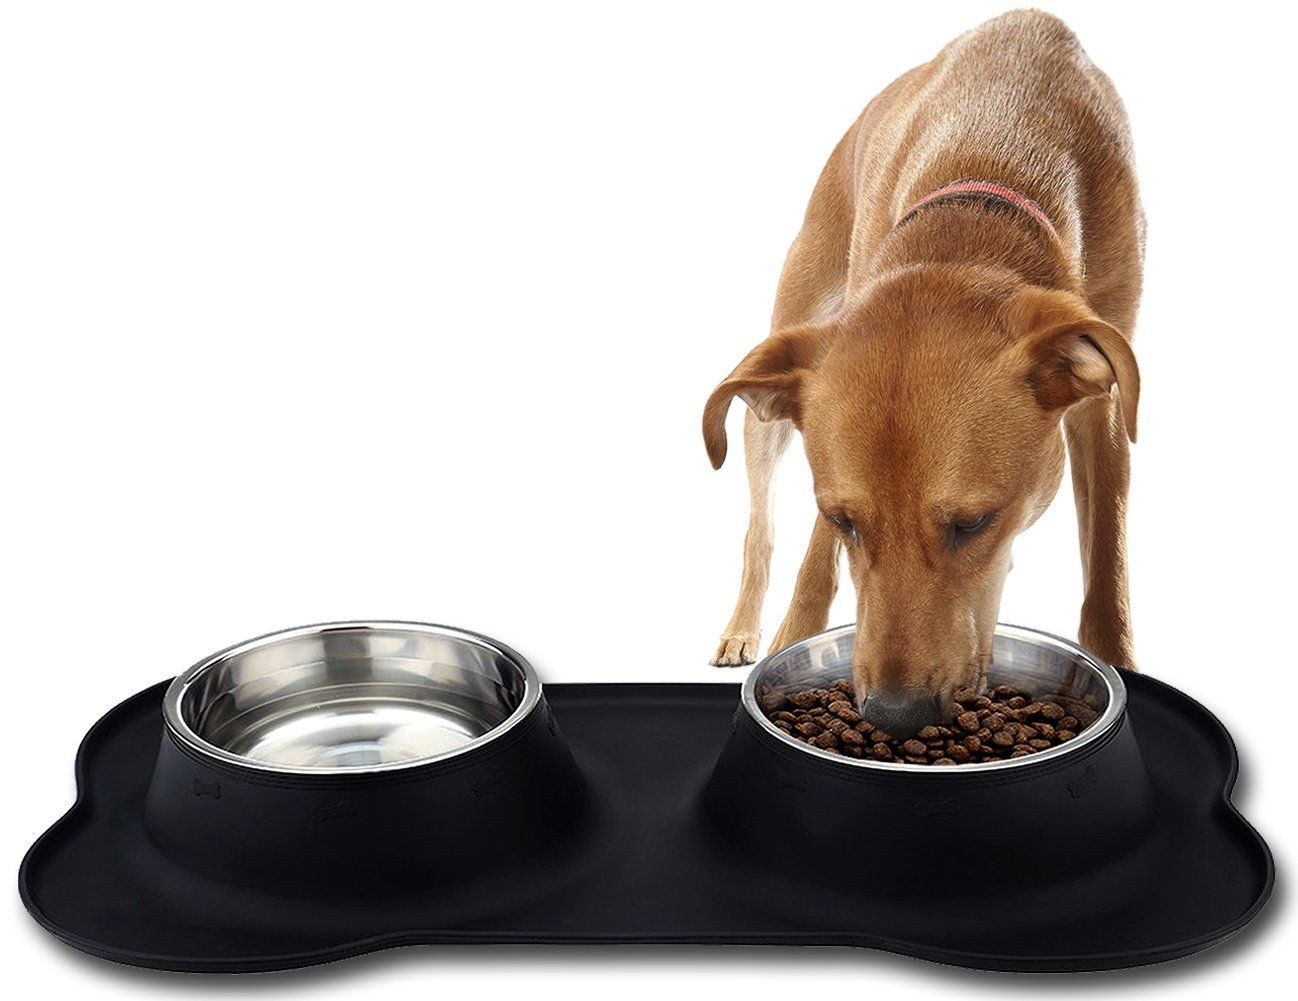 Voao Bone Dog Bowl Set Stainless Steel Dog Food Water Bowl With No Spill Silicone Stand Non Skid Feeder With Mat S Dog Bowls Dog Feeding Pet Bowls